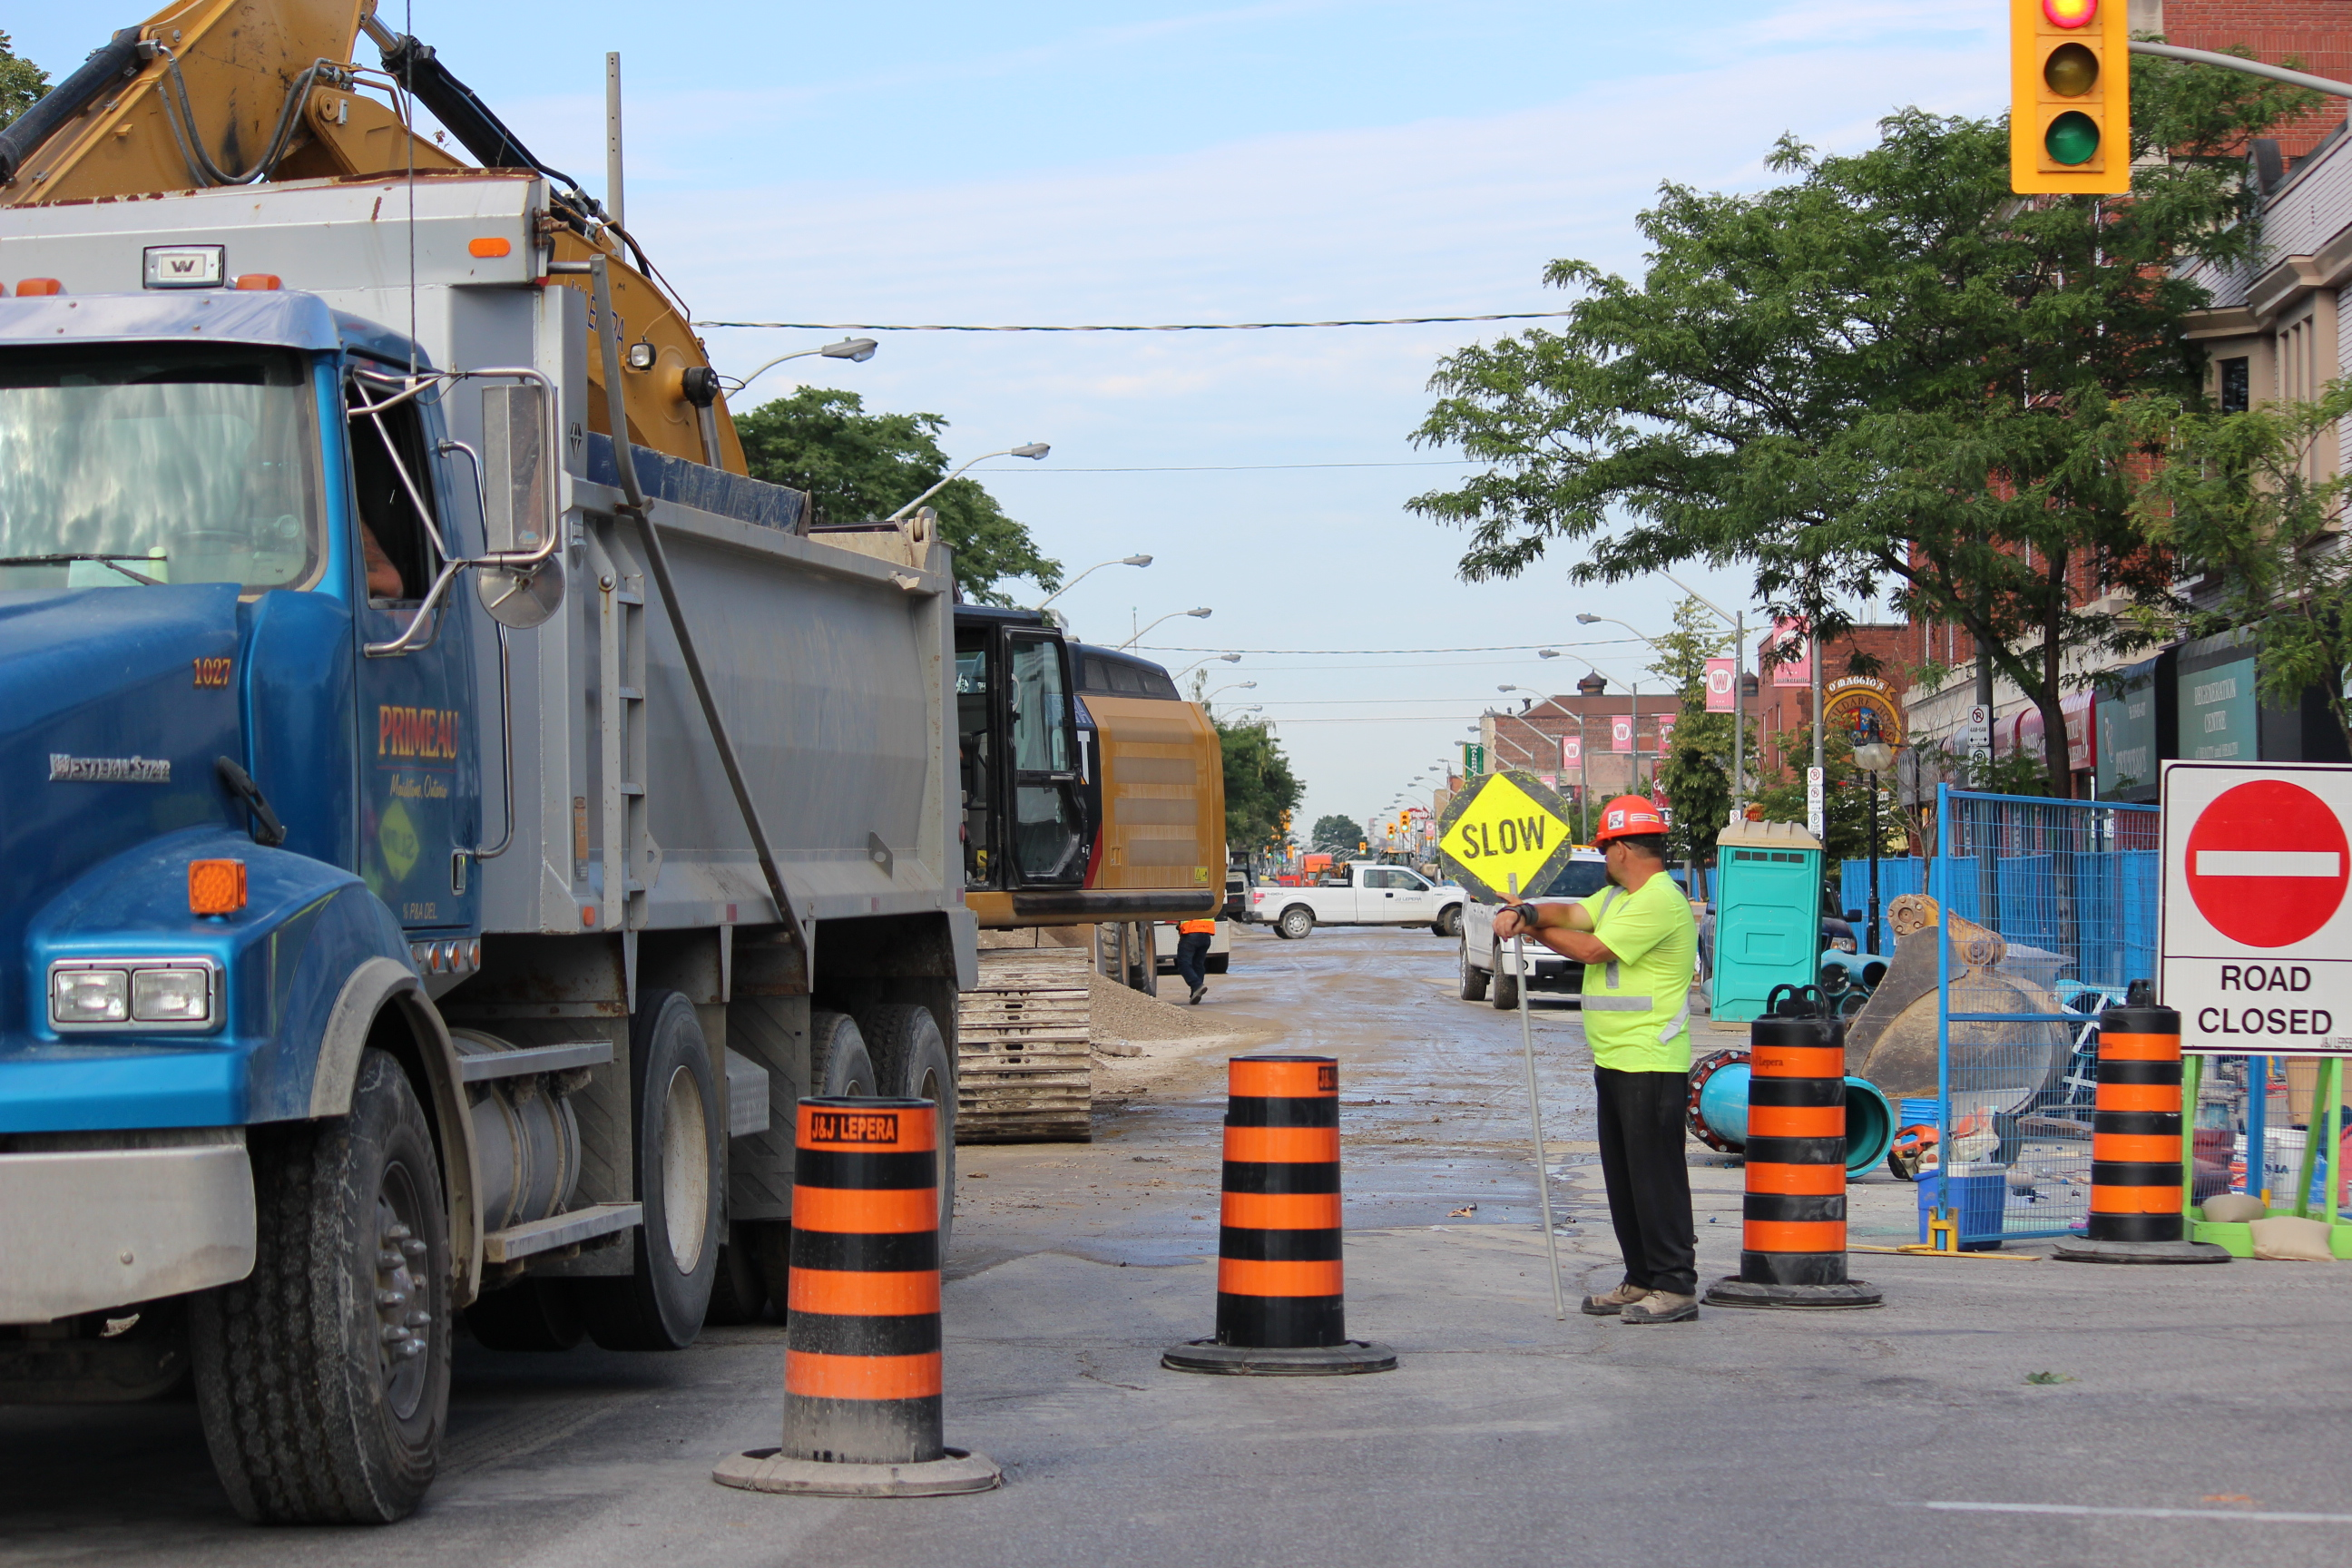 Construction has shut down Wyandotte St. E. between Devonshire Rd. and Gladstone Ave. (Photo by Adelle Loiselle.)